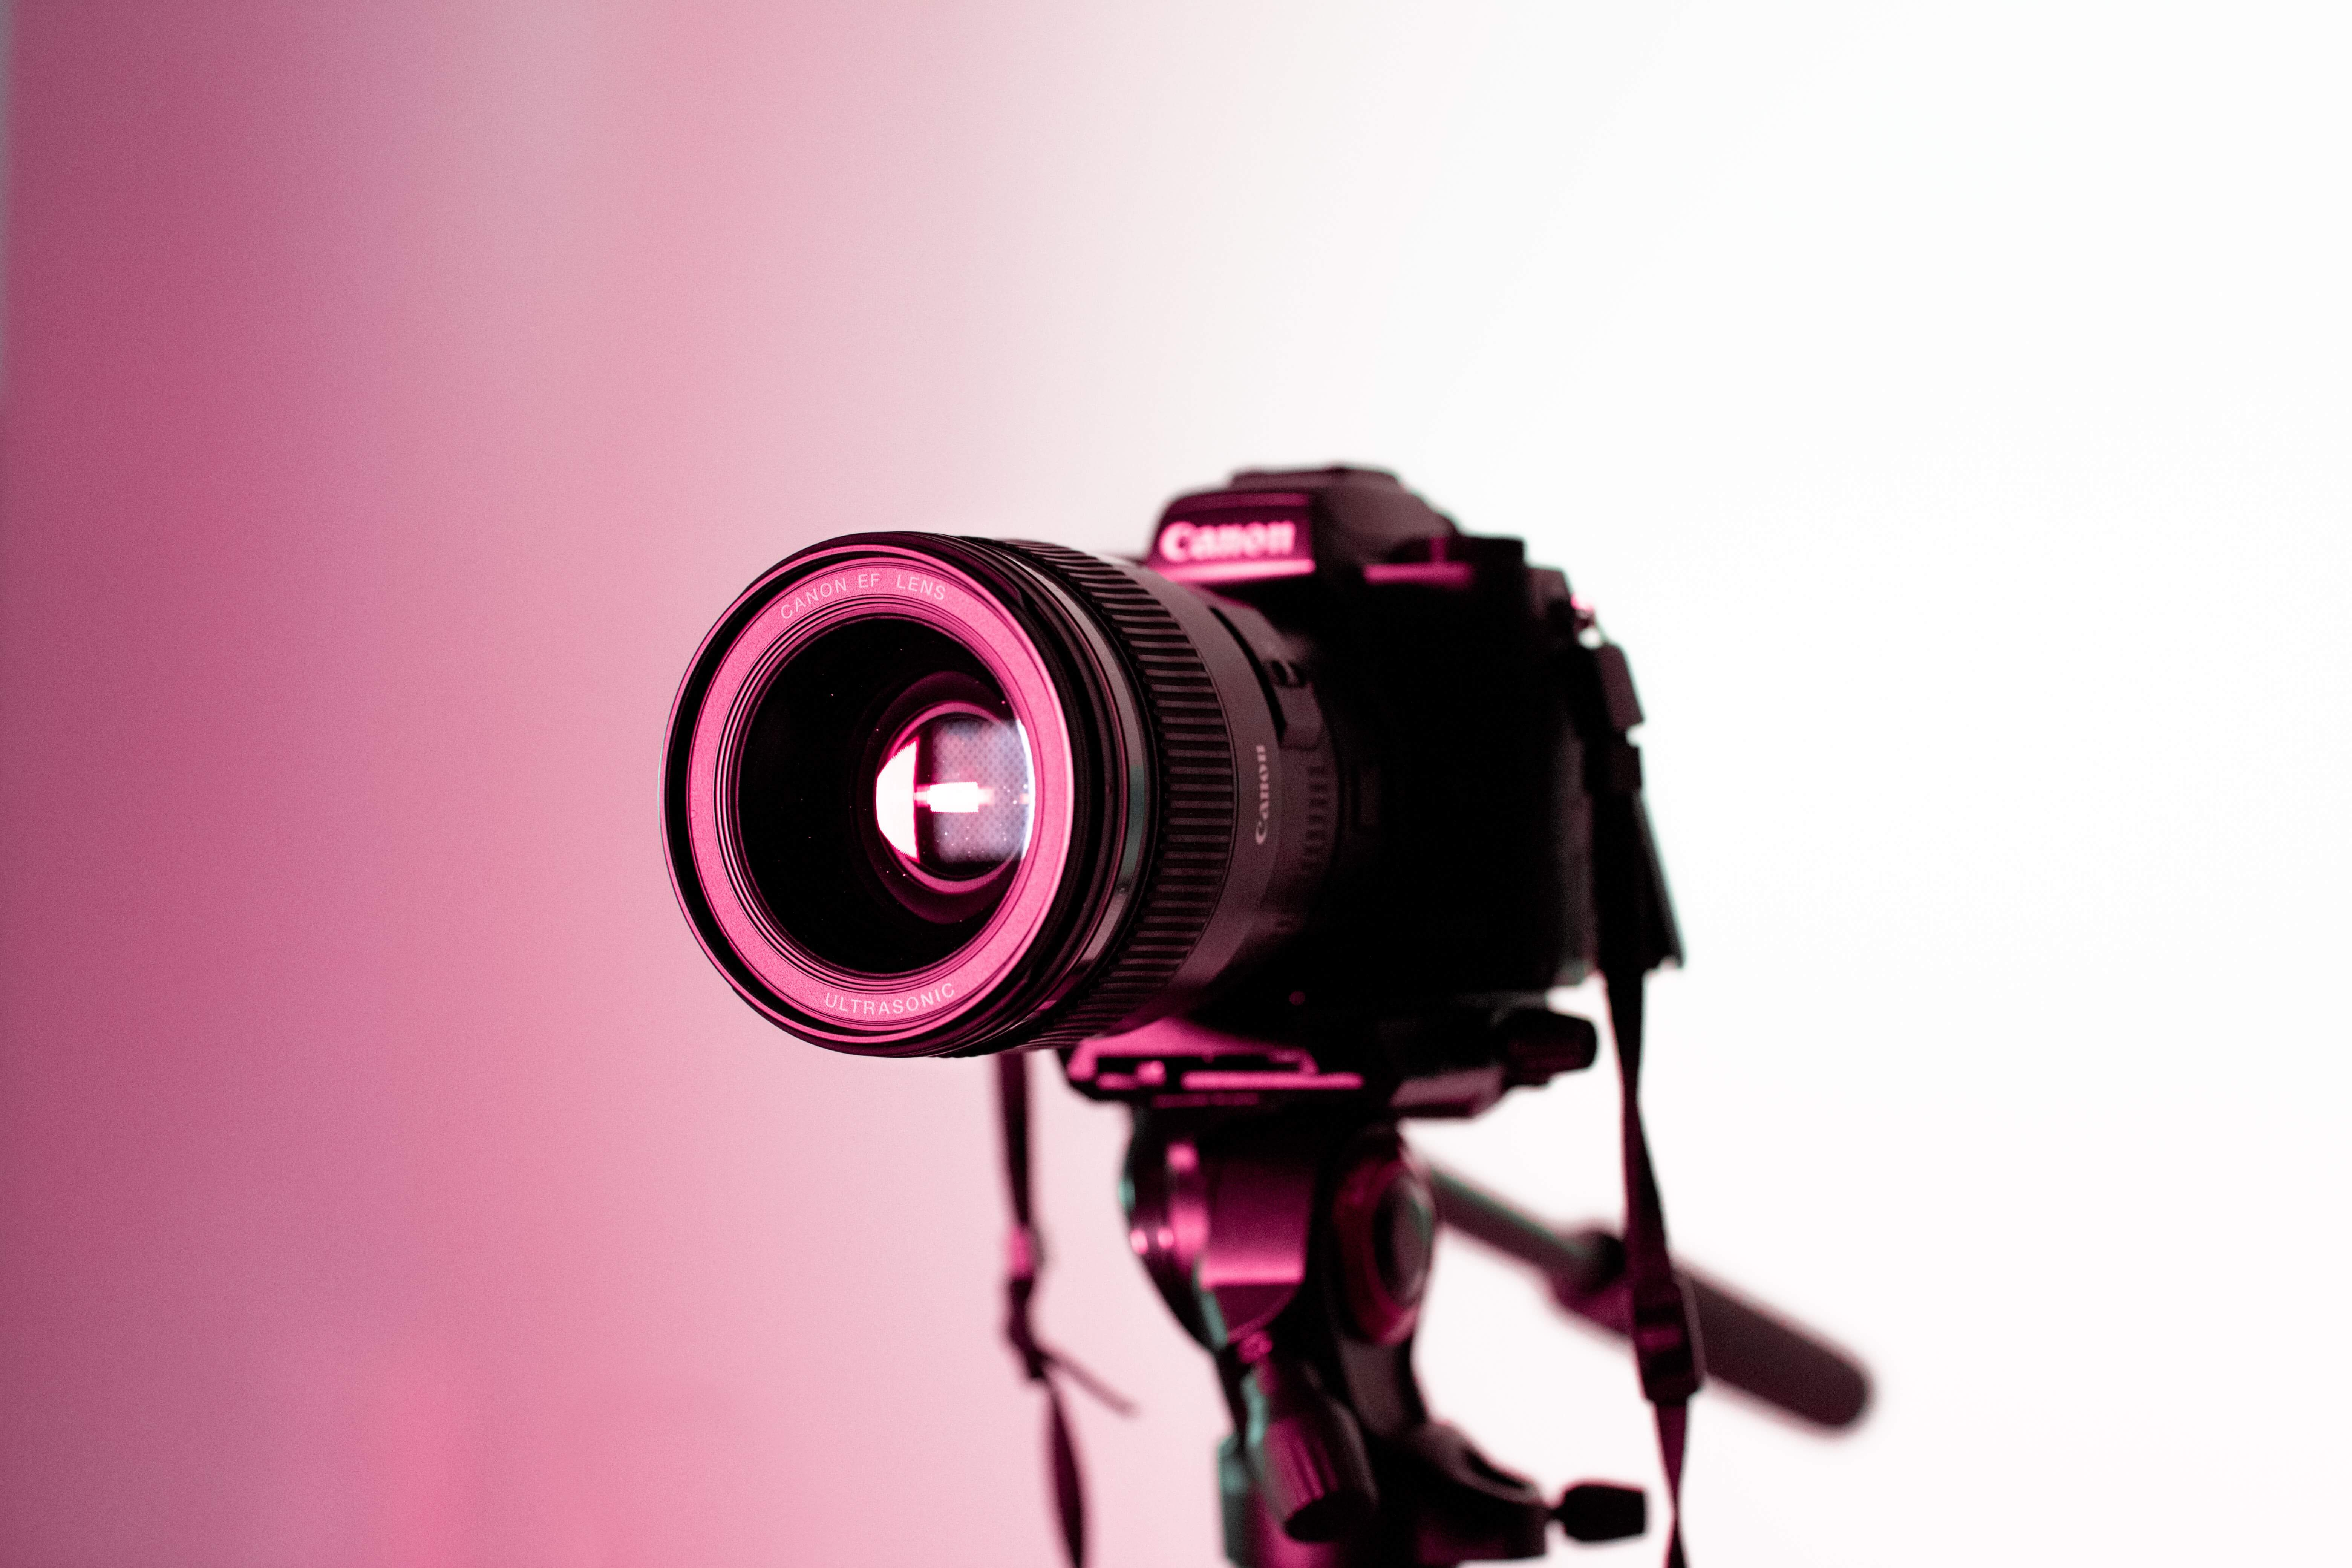 Royalty-Free Images: A Guide